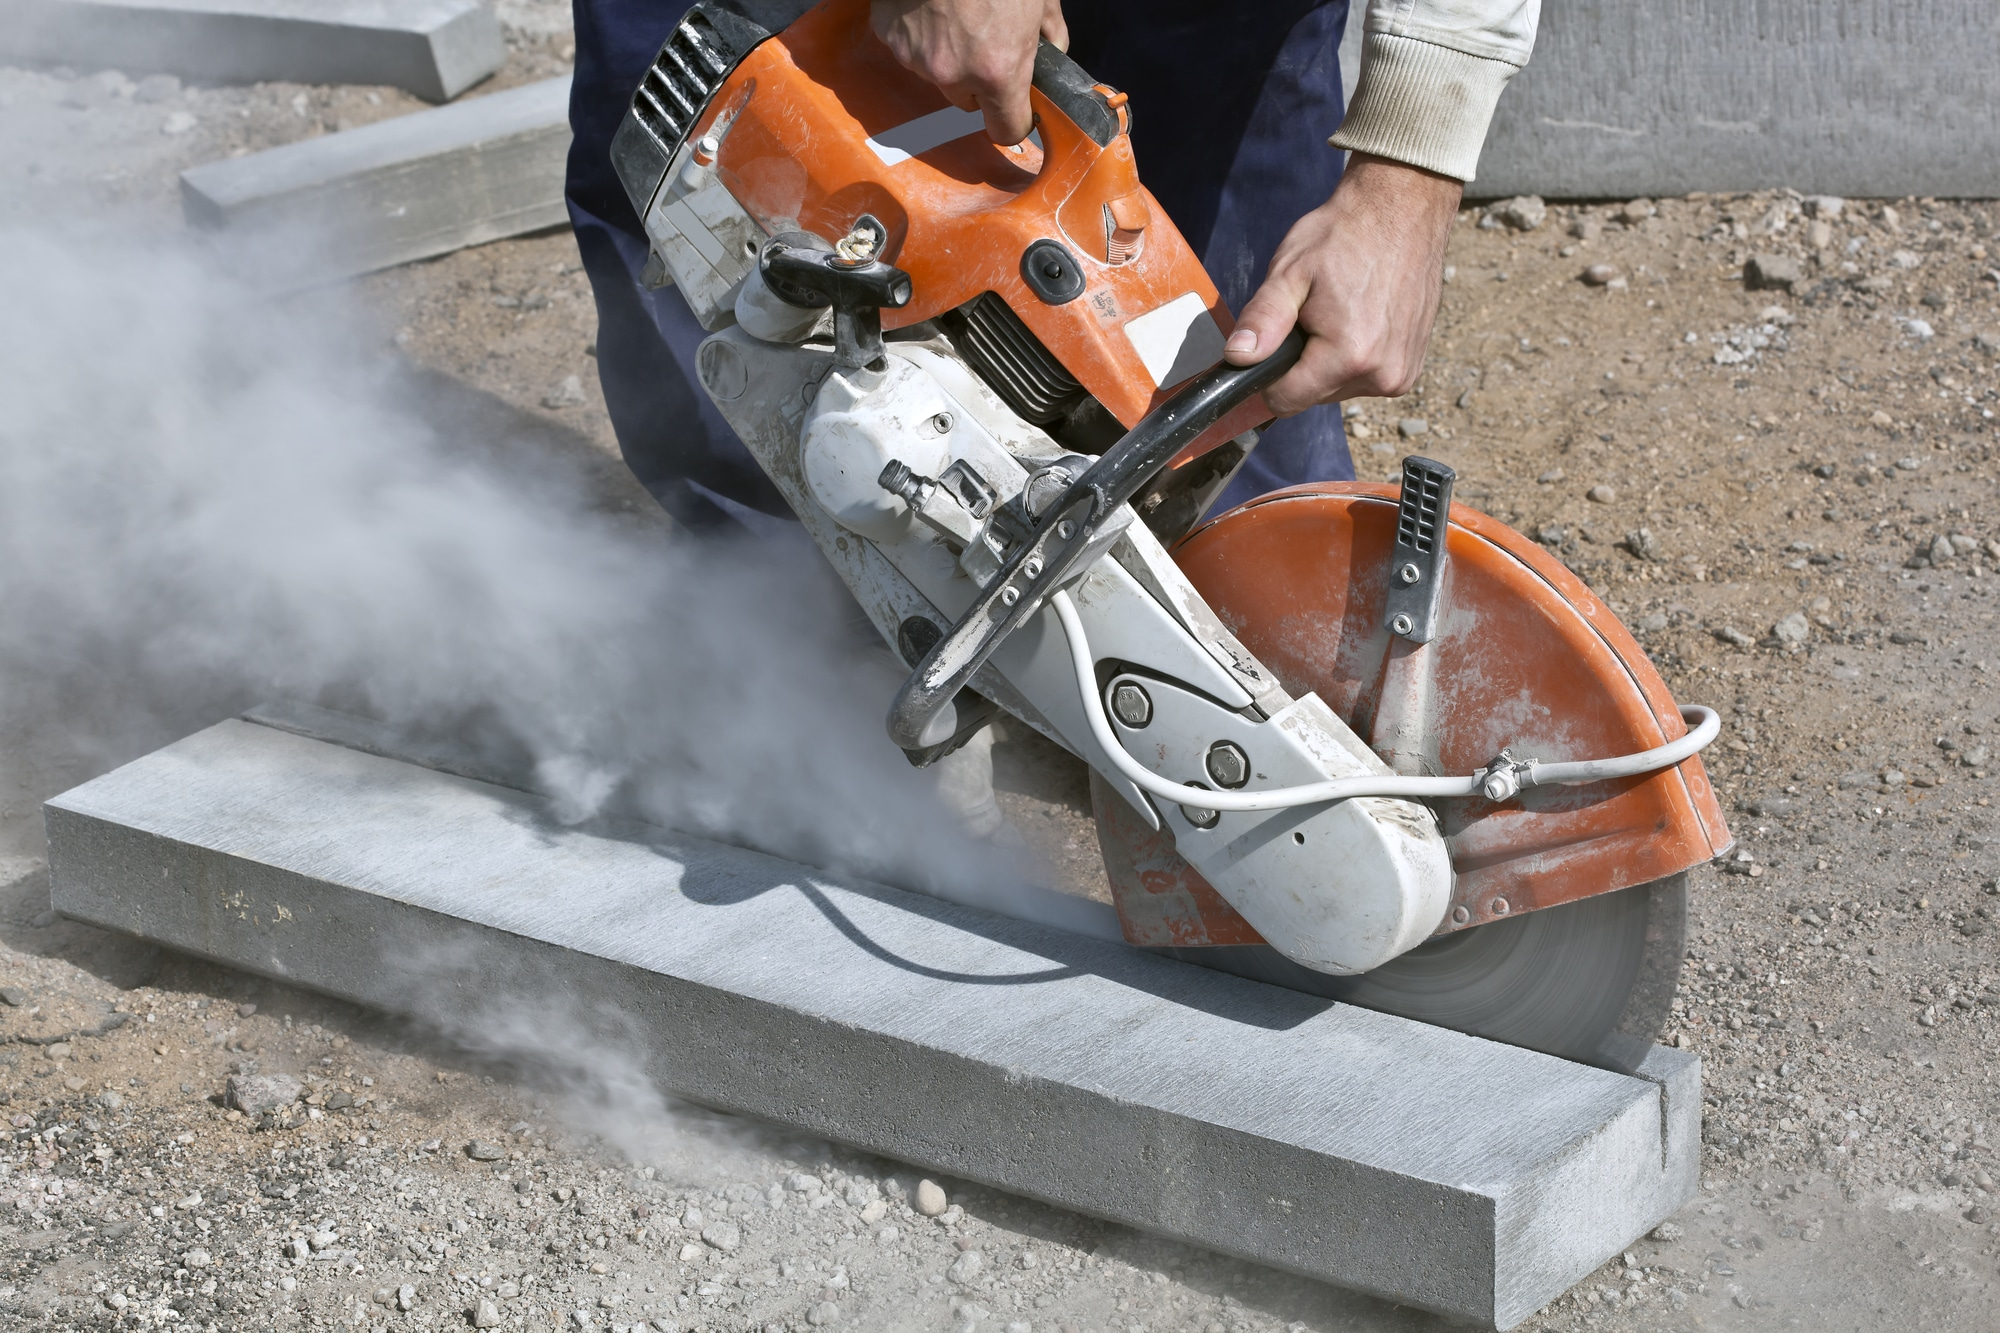 What do you look for when choosing a professional concrete cutting contractor?